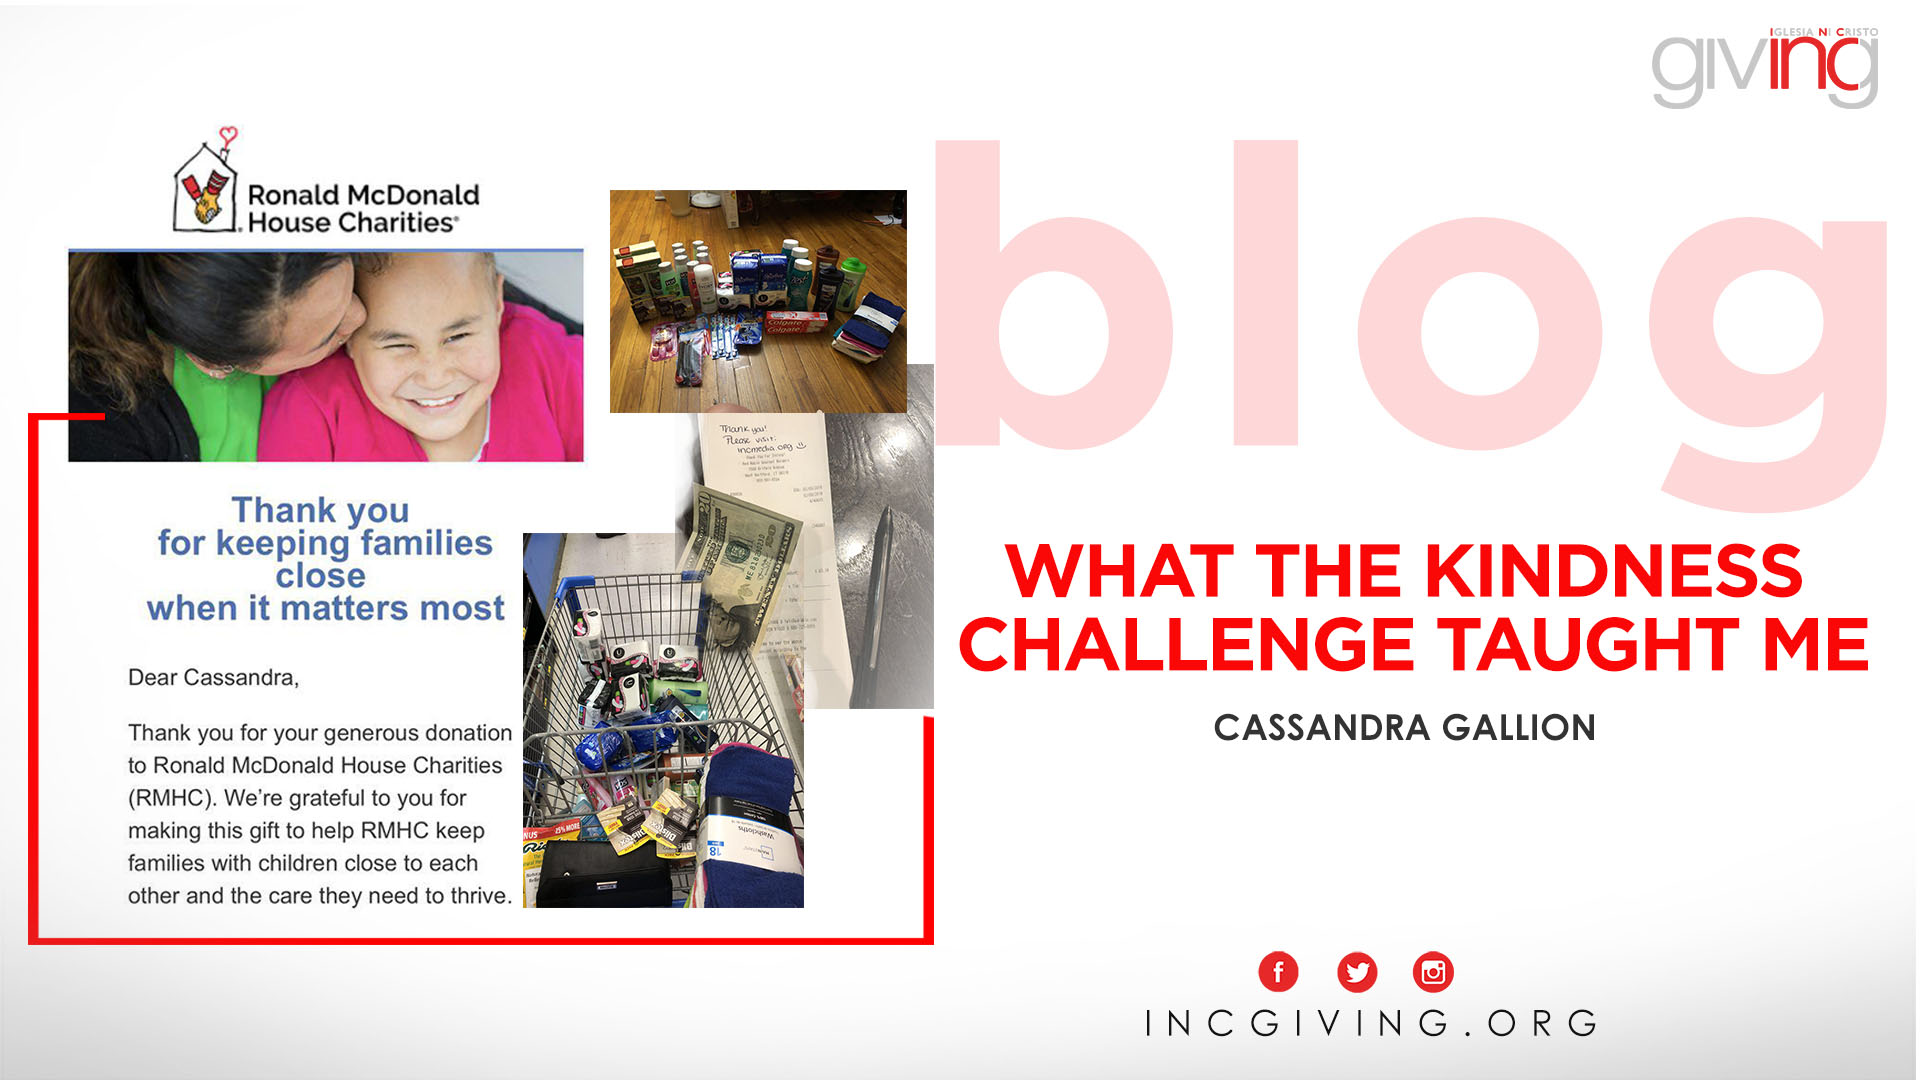 What I Learned from the Kindness Challenge